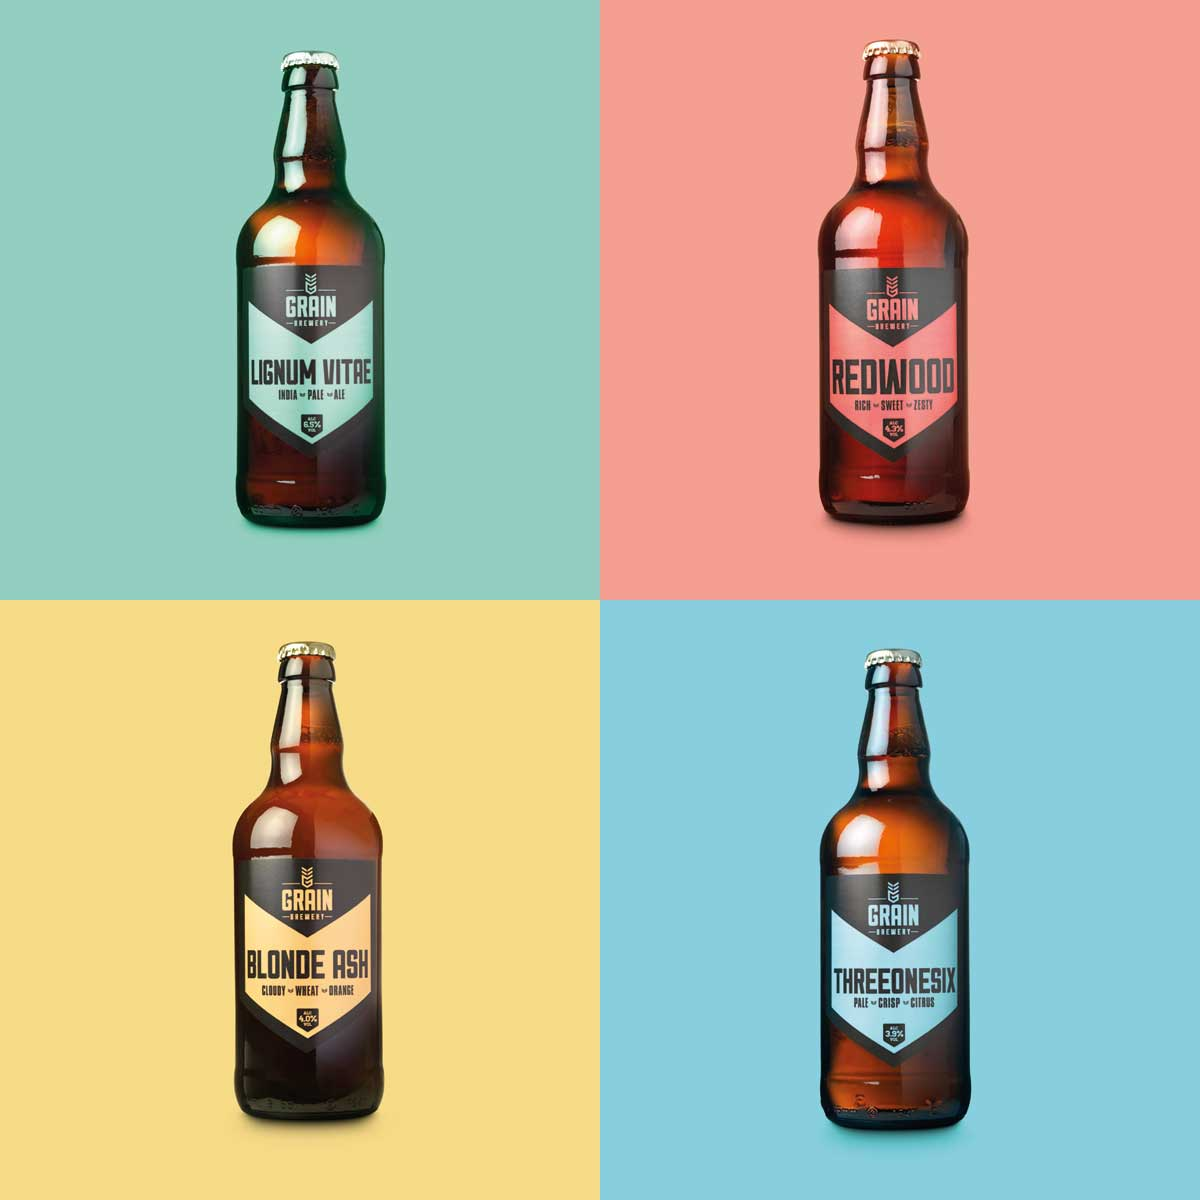 grain-brewery-norfolk-norwich-bottle-label-design-branding-logo-design.jpg